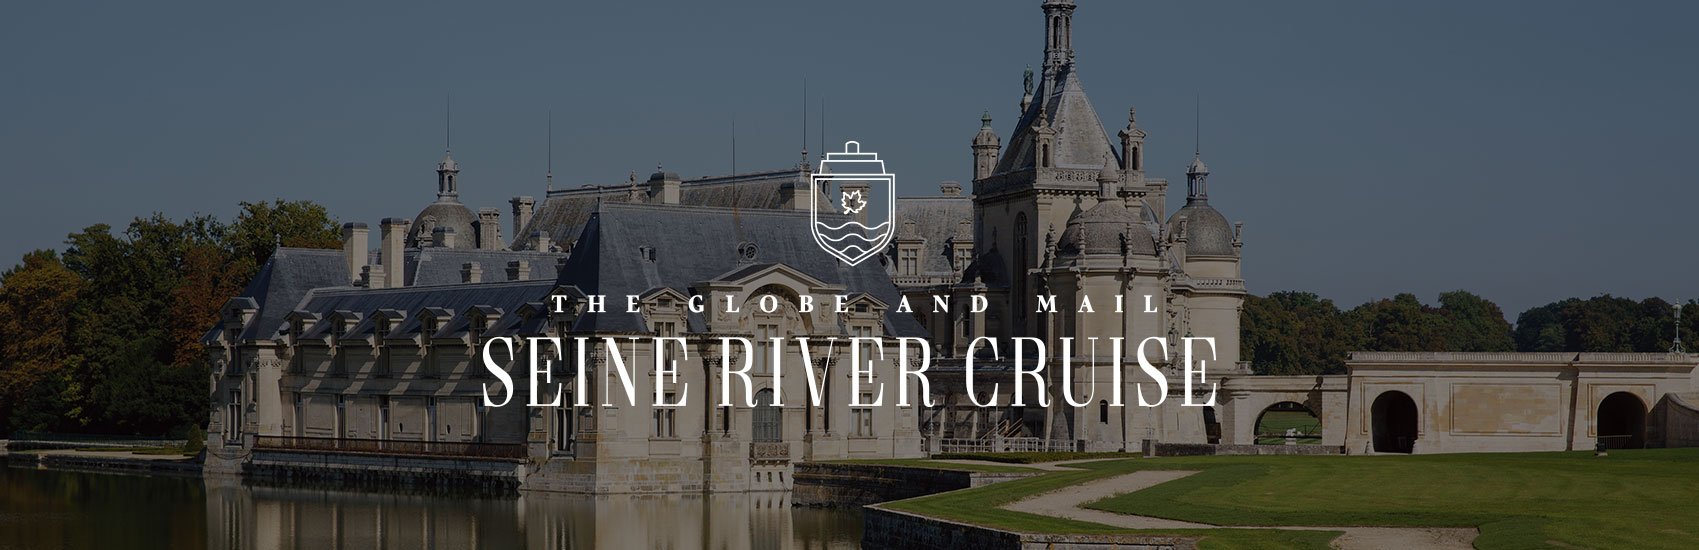 Exclusive Globe and Mail Seine River Cruise